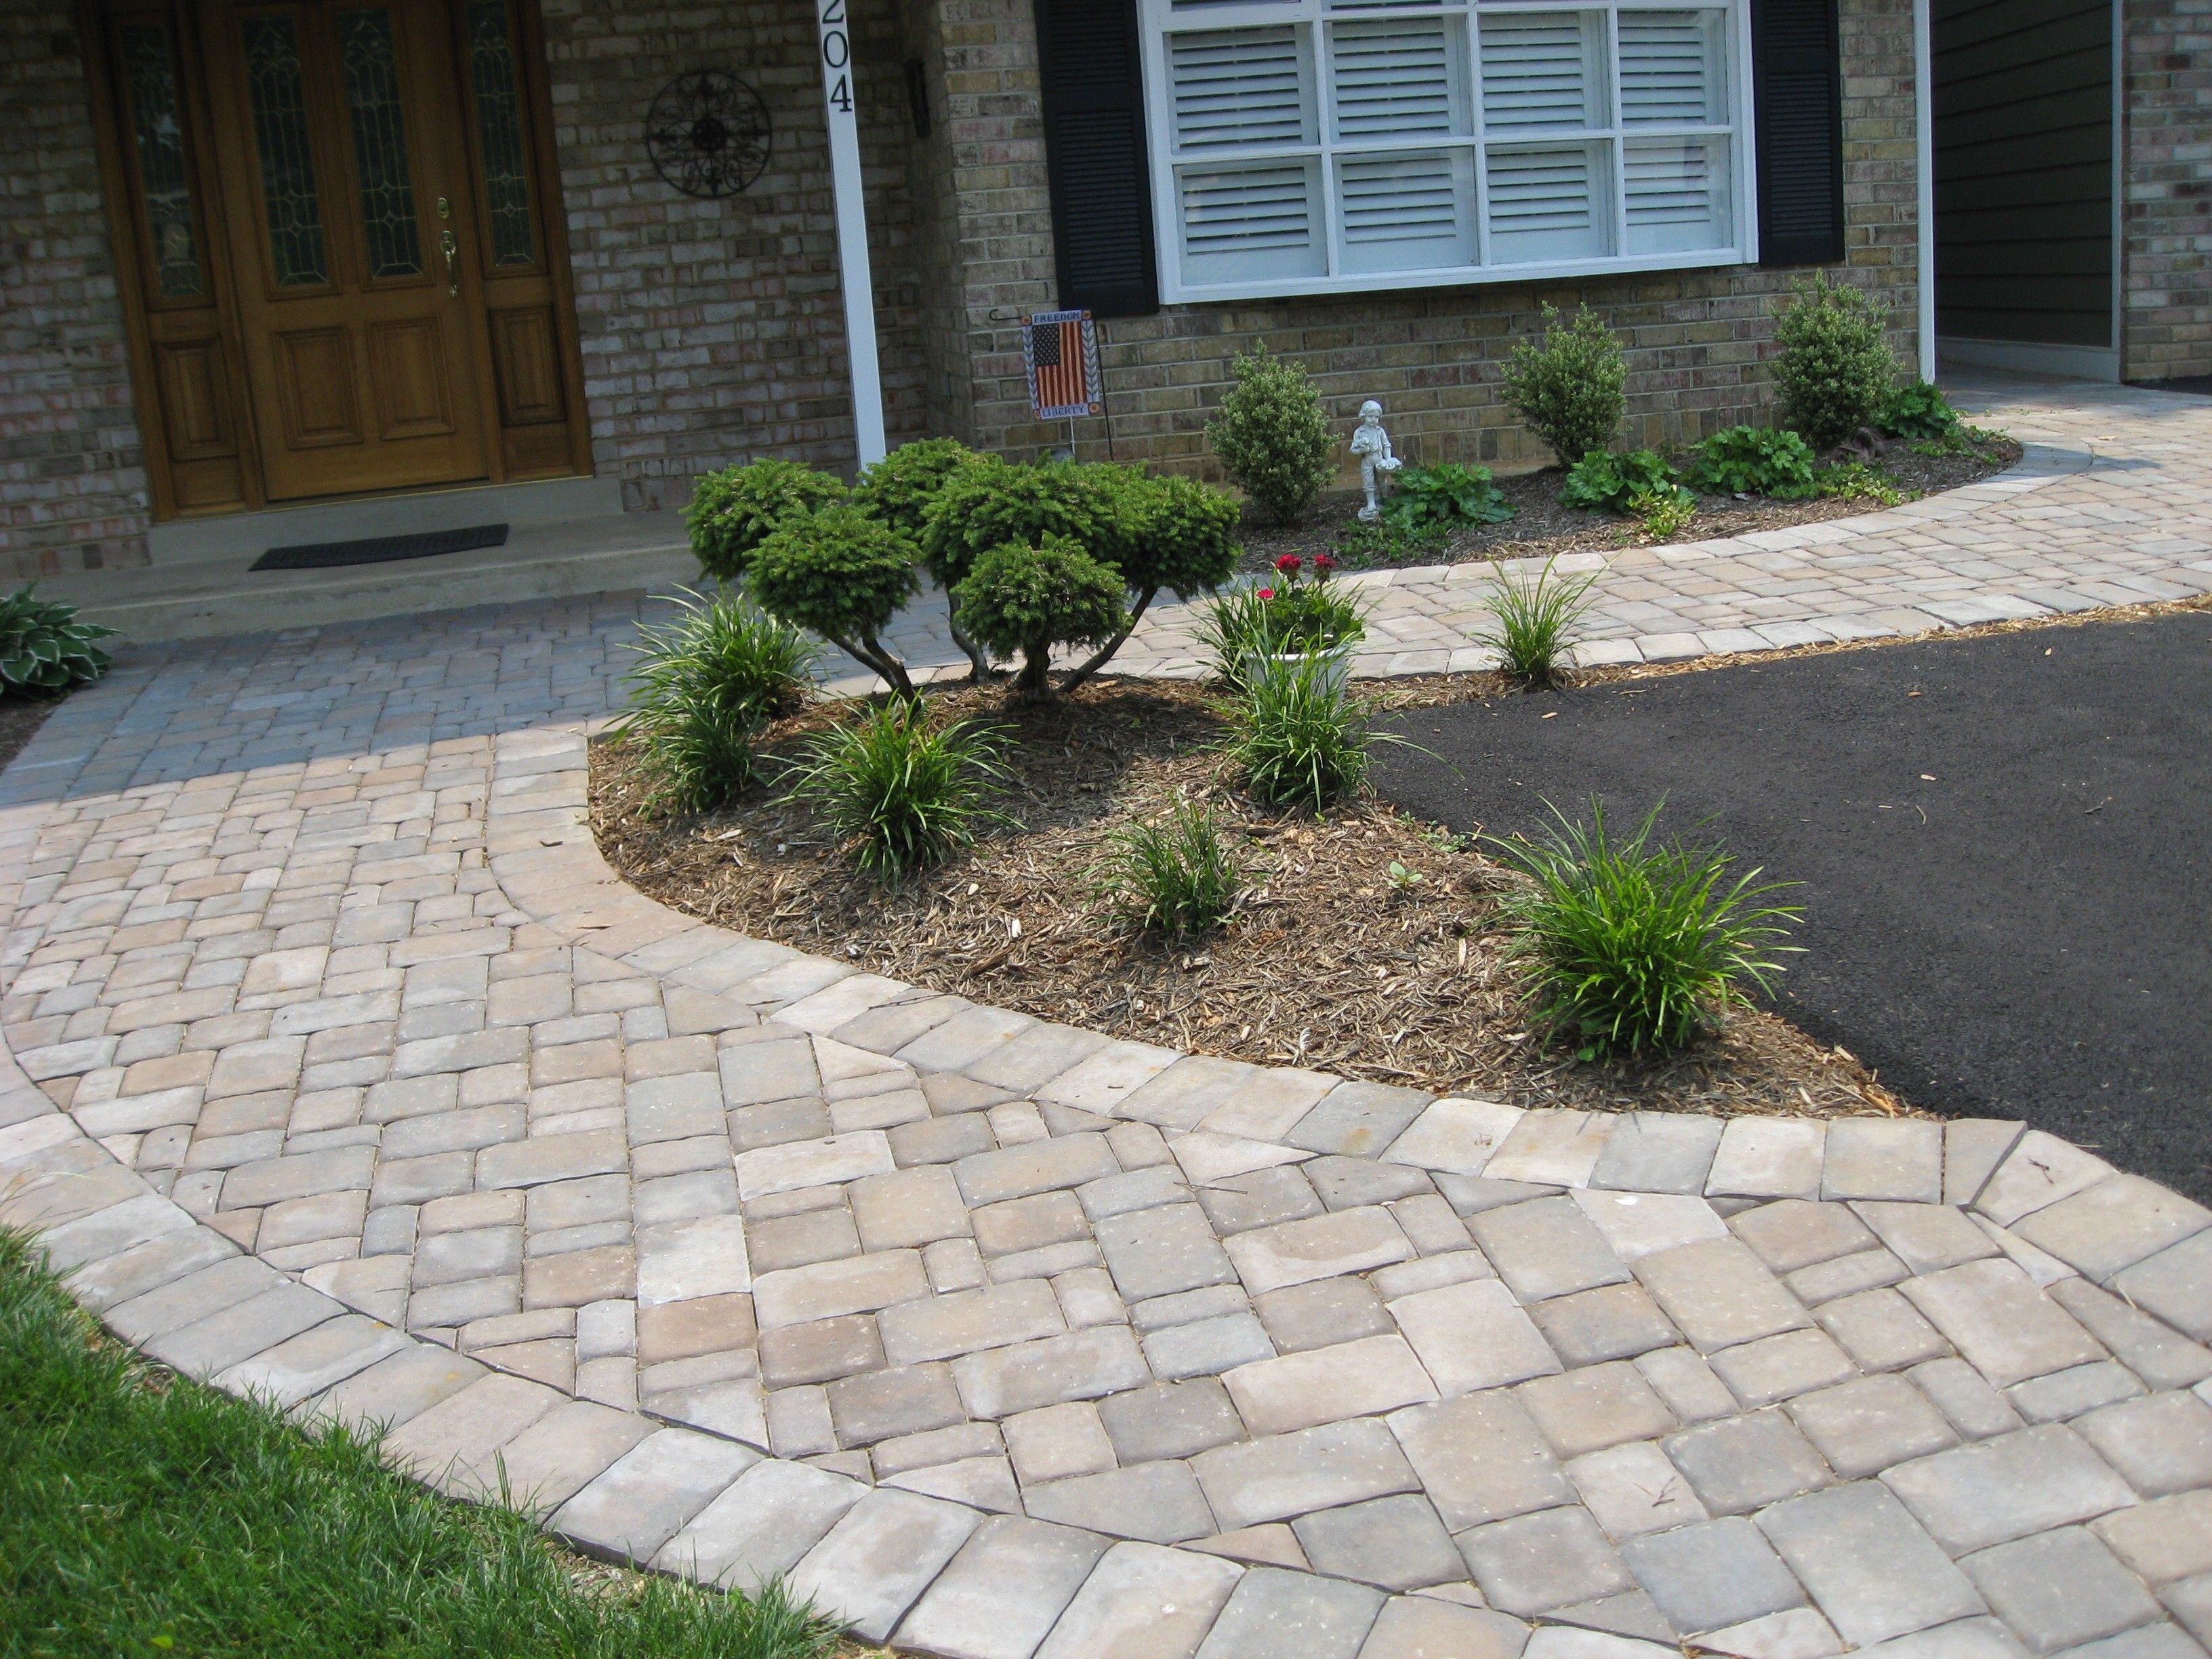 Paver walkway design garden advice for your home for Paved garden designs